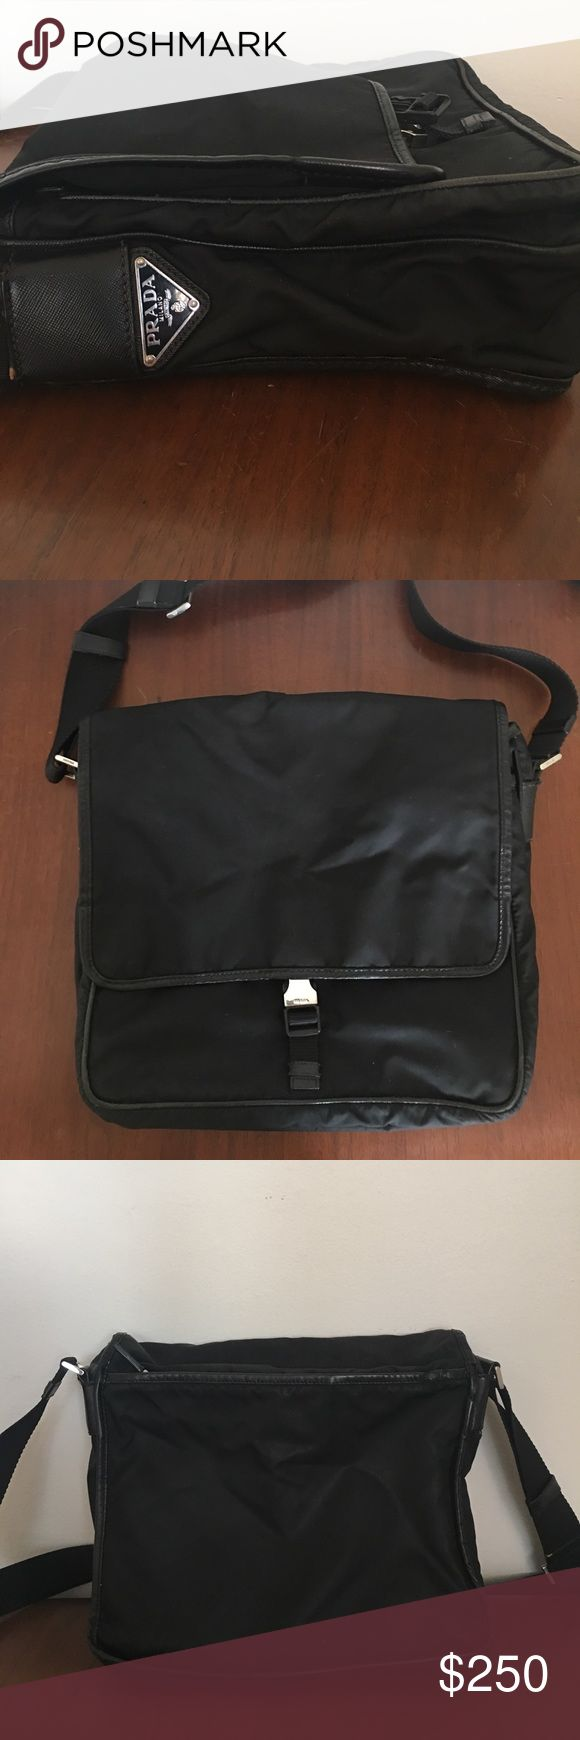 Authentic 2007 PRADA messenger bag. Black microfiber with leather trim. Adjustable strap. Nice size, not too big. Works for male or female. Slight wear on leather trim and small tear on inner lining but nothing major. Prada Bags Crossbody Bags